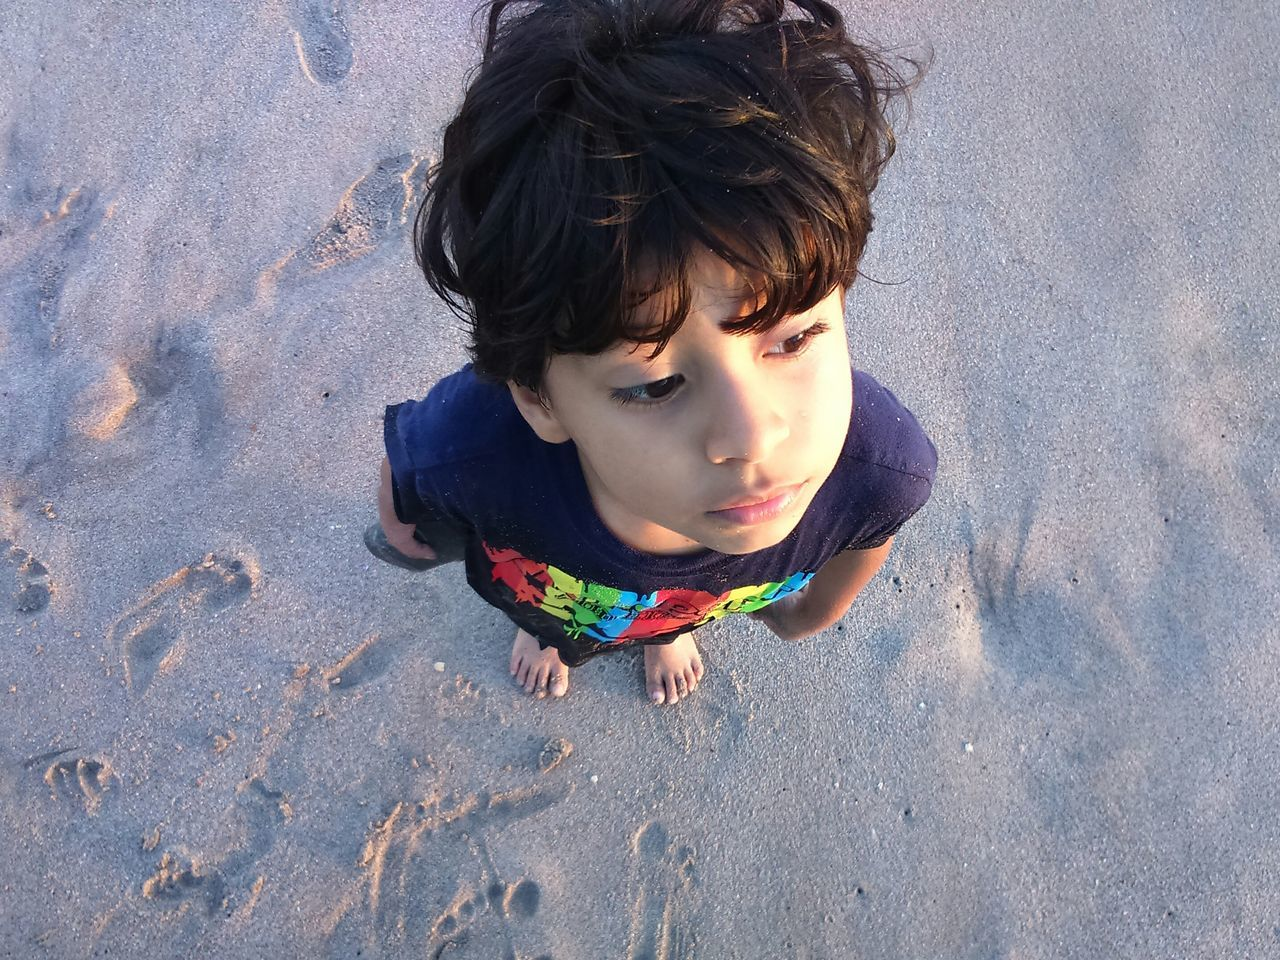 sand, high angle view, childhood, beach, one person, leisure activity, boys, outdoors, day, real people, shadow, casual clothing, elementary age, sunlight, lifestyles, multi colored, sand pail and shovel, one boy only, people